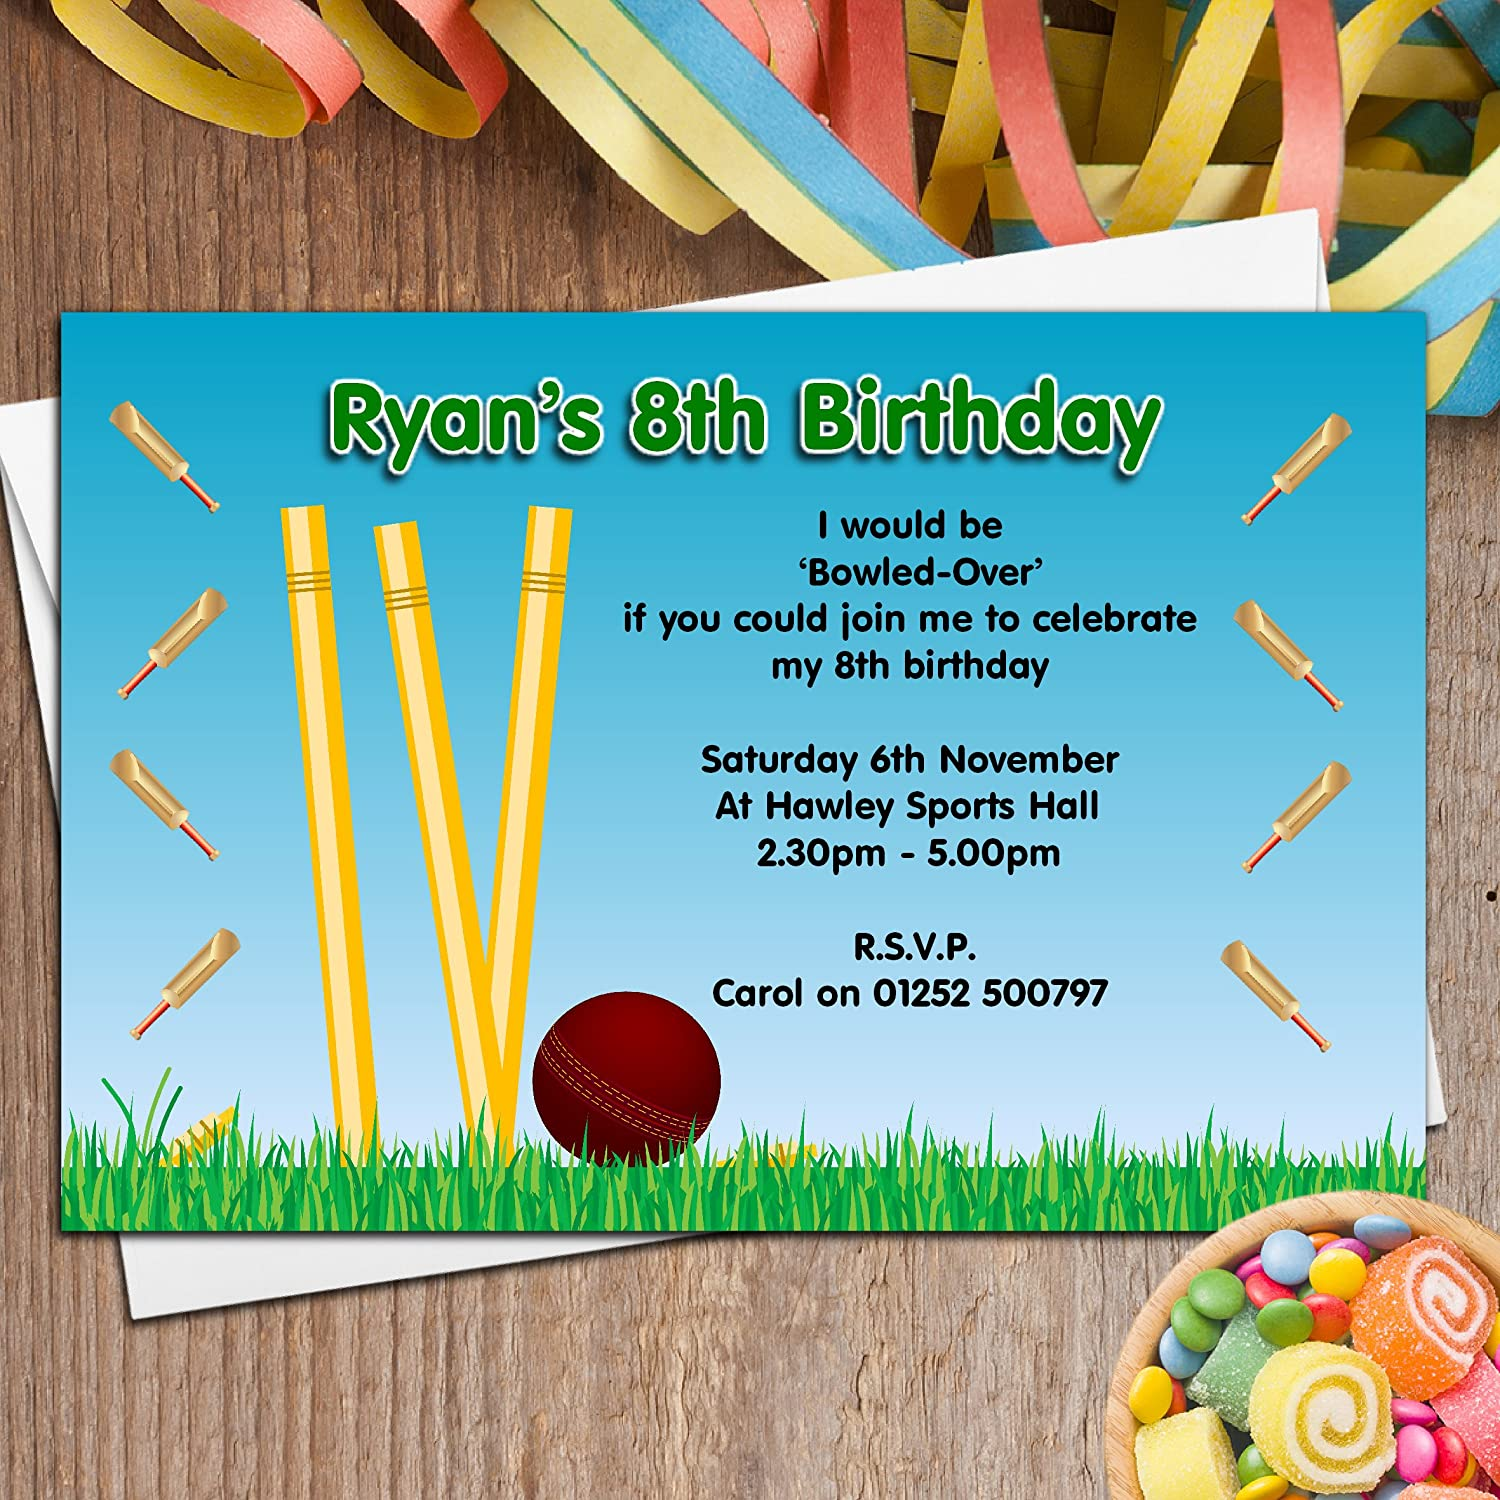 Contemporary Personalised Party Invitations Uk Gallery - Invitations ...